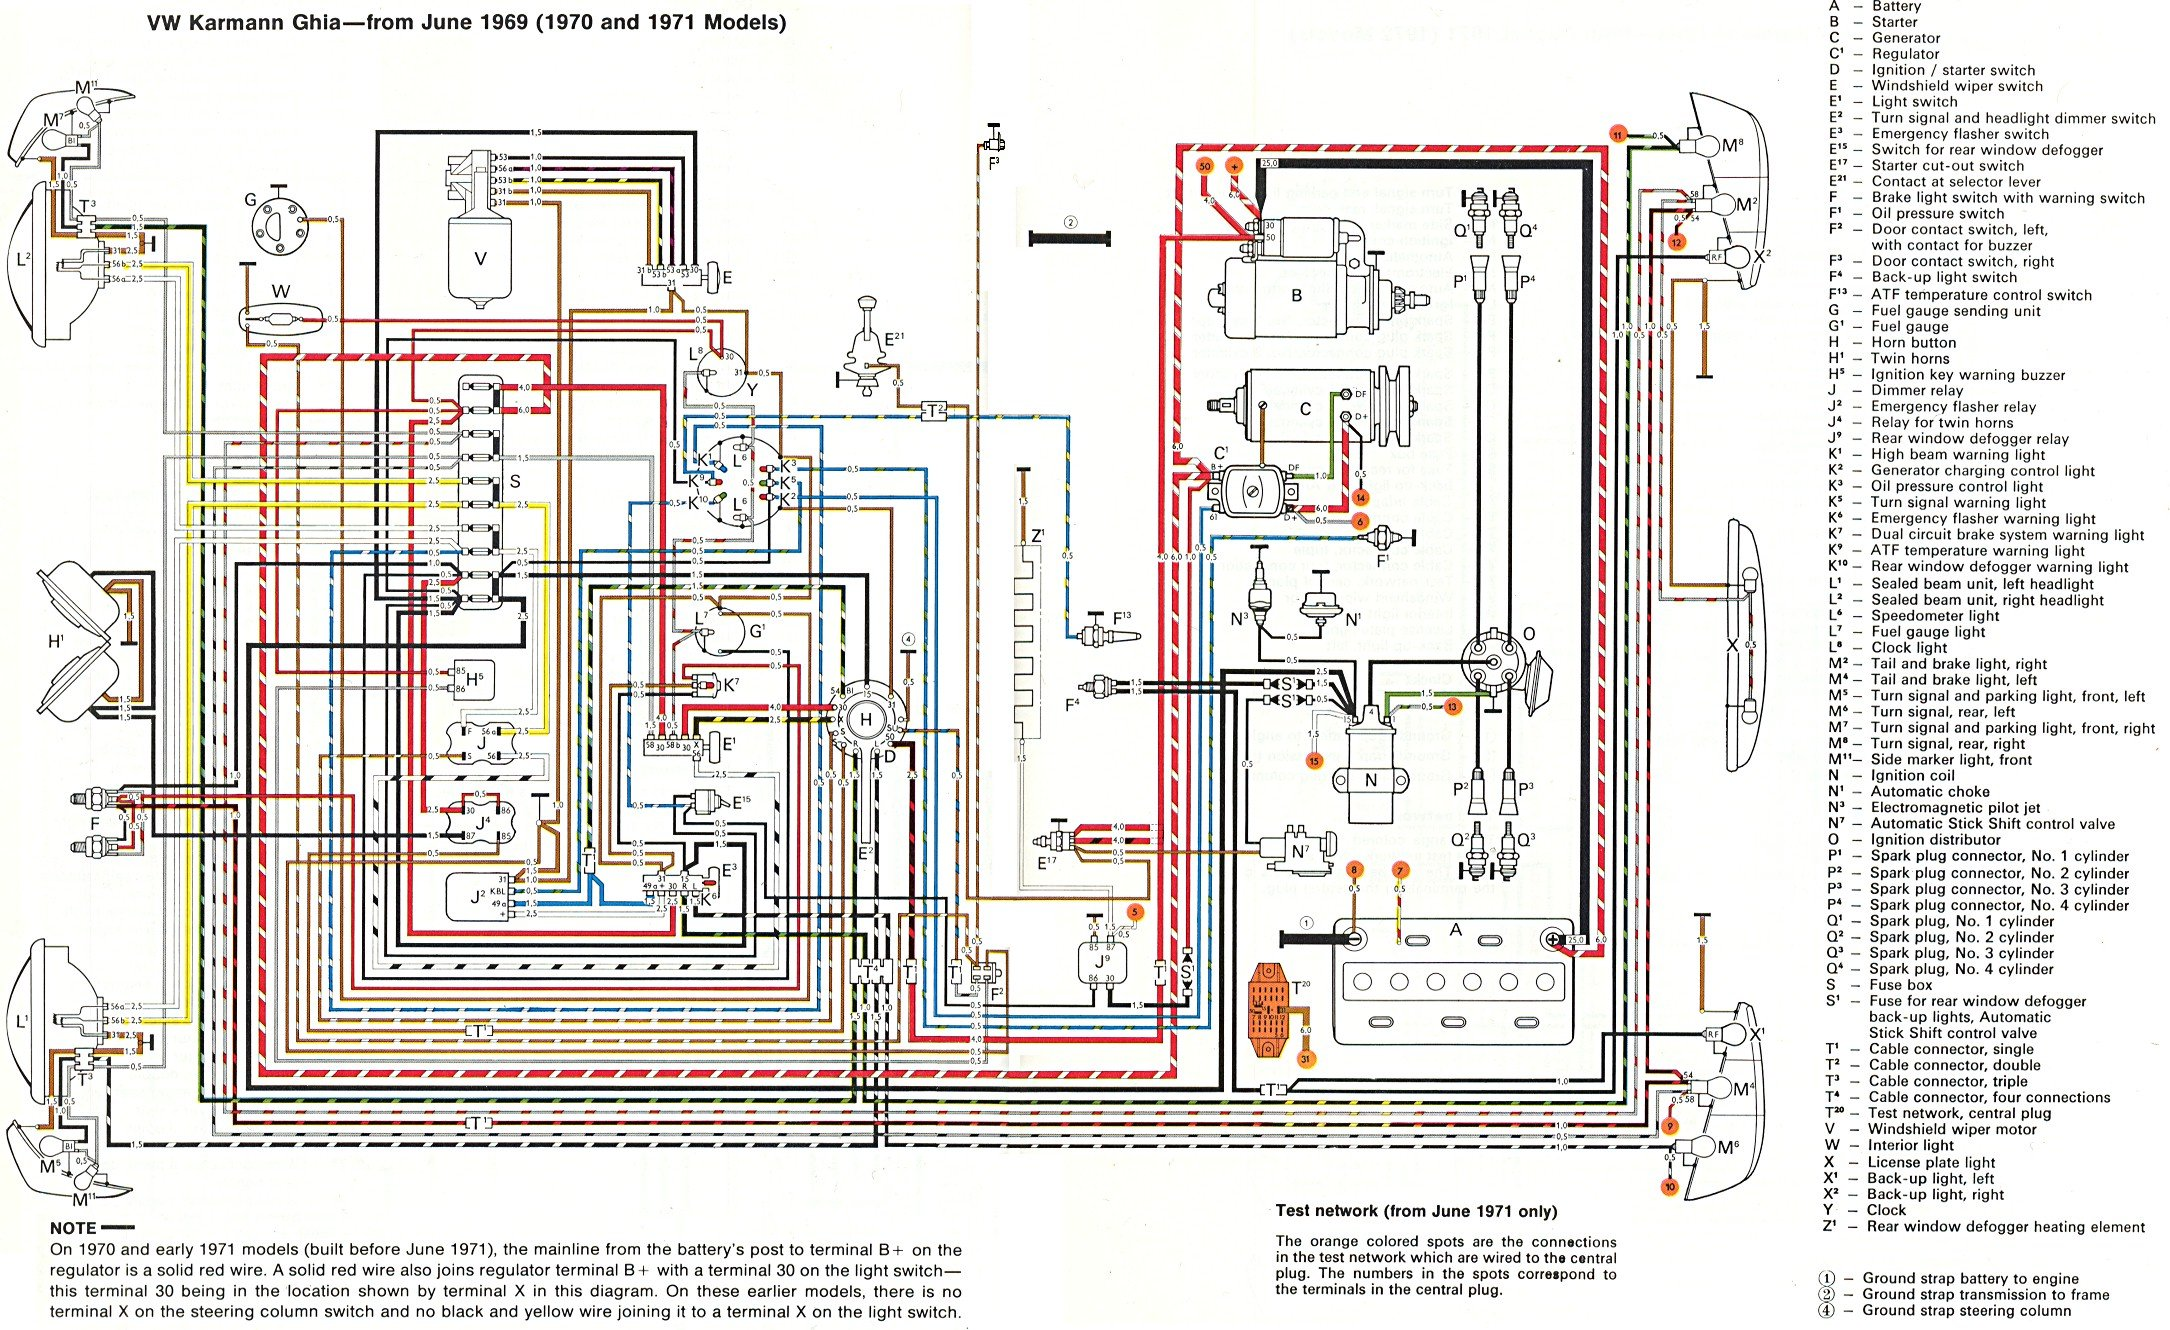 1968 Camaro Fuse Box Data Wiring Diagrams Thesamba Com Karmann Ghia Lps Location